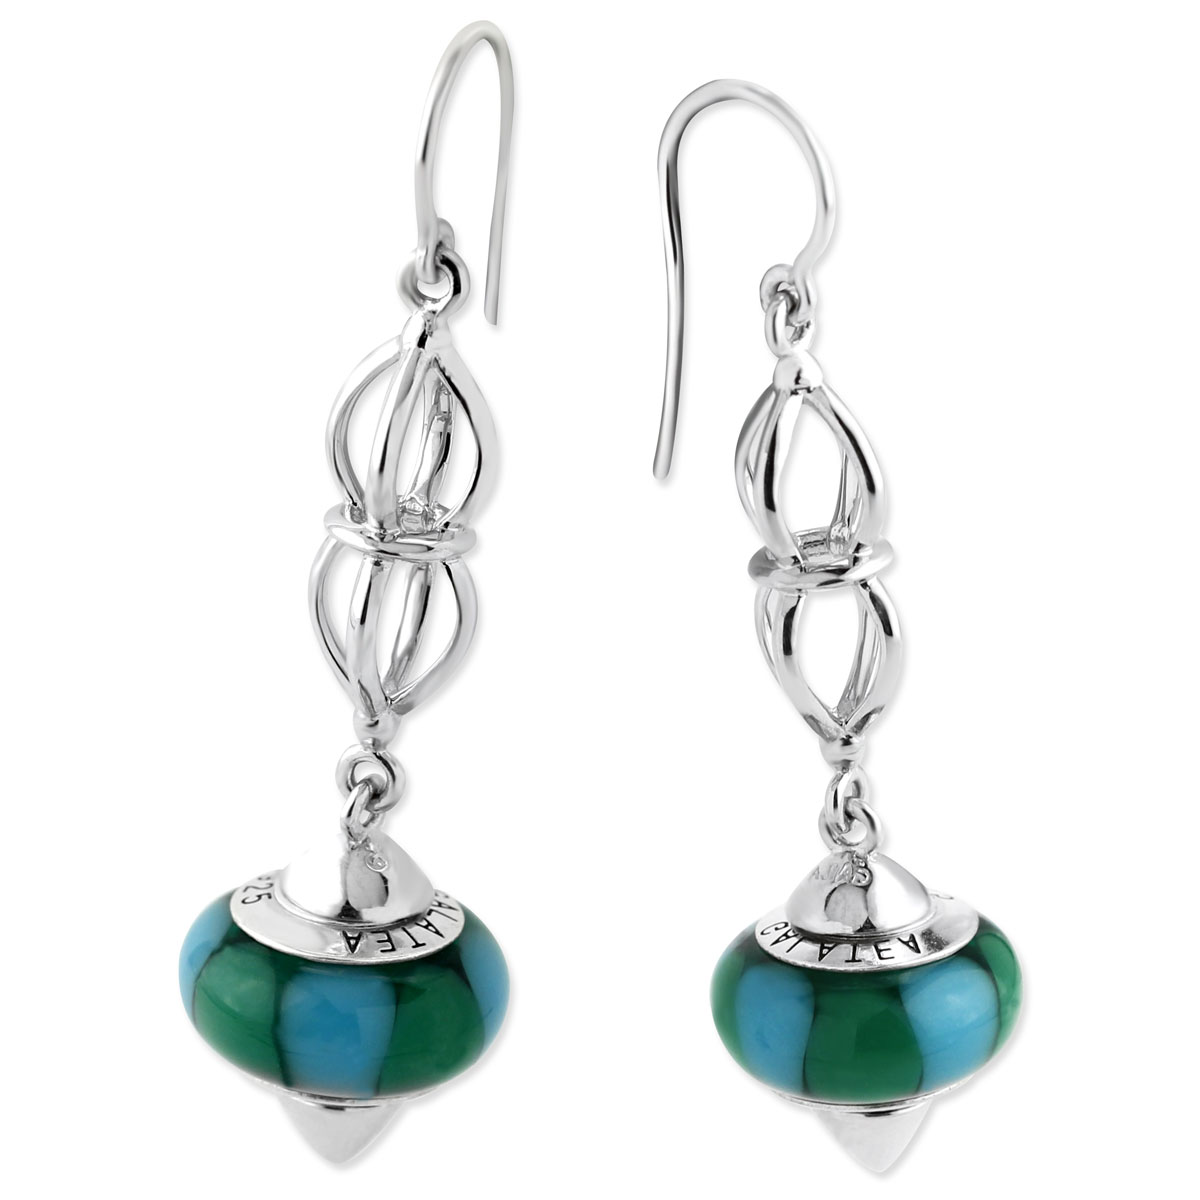 342108-Galatea Interchangeable Earrings with Green & Blue Beads